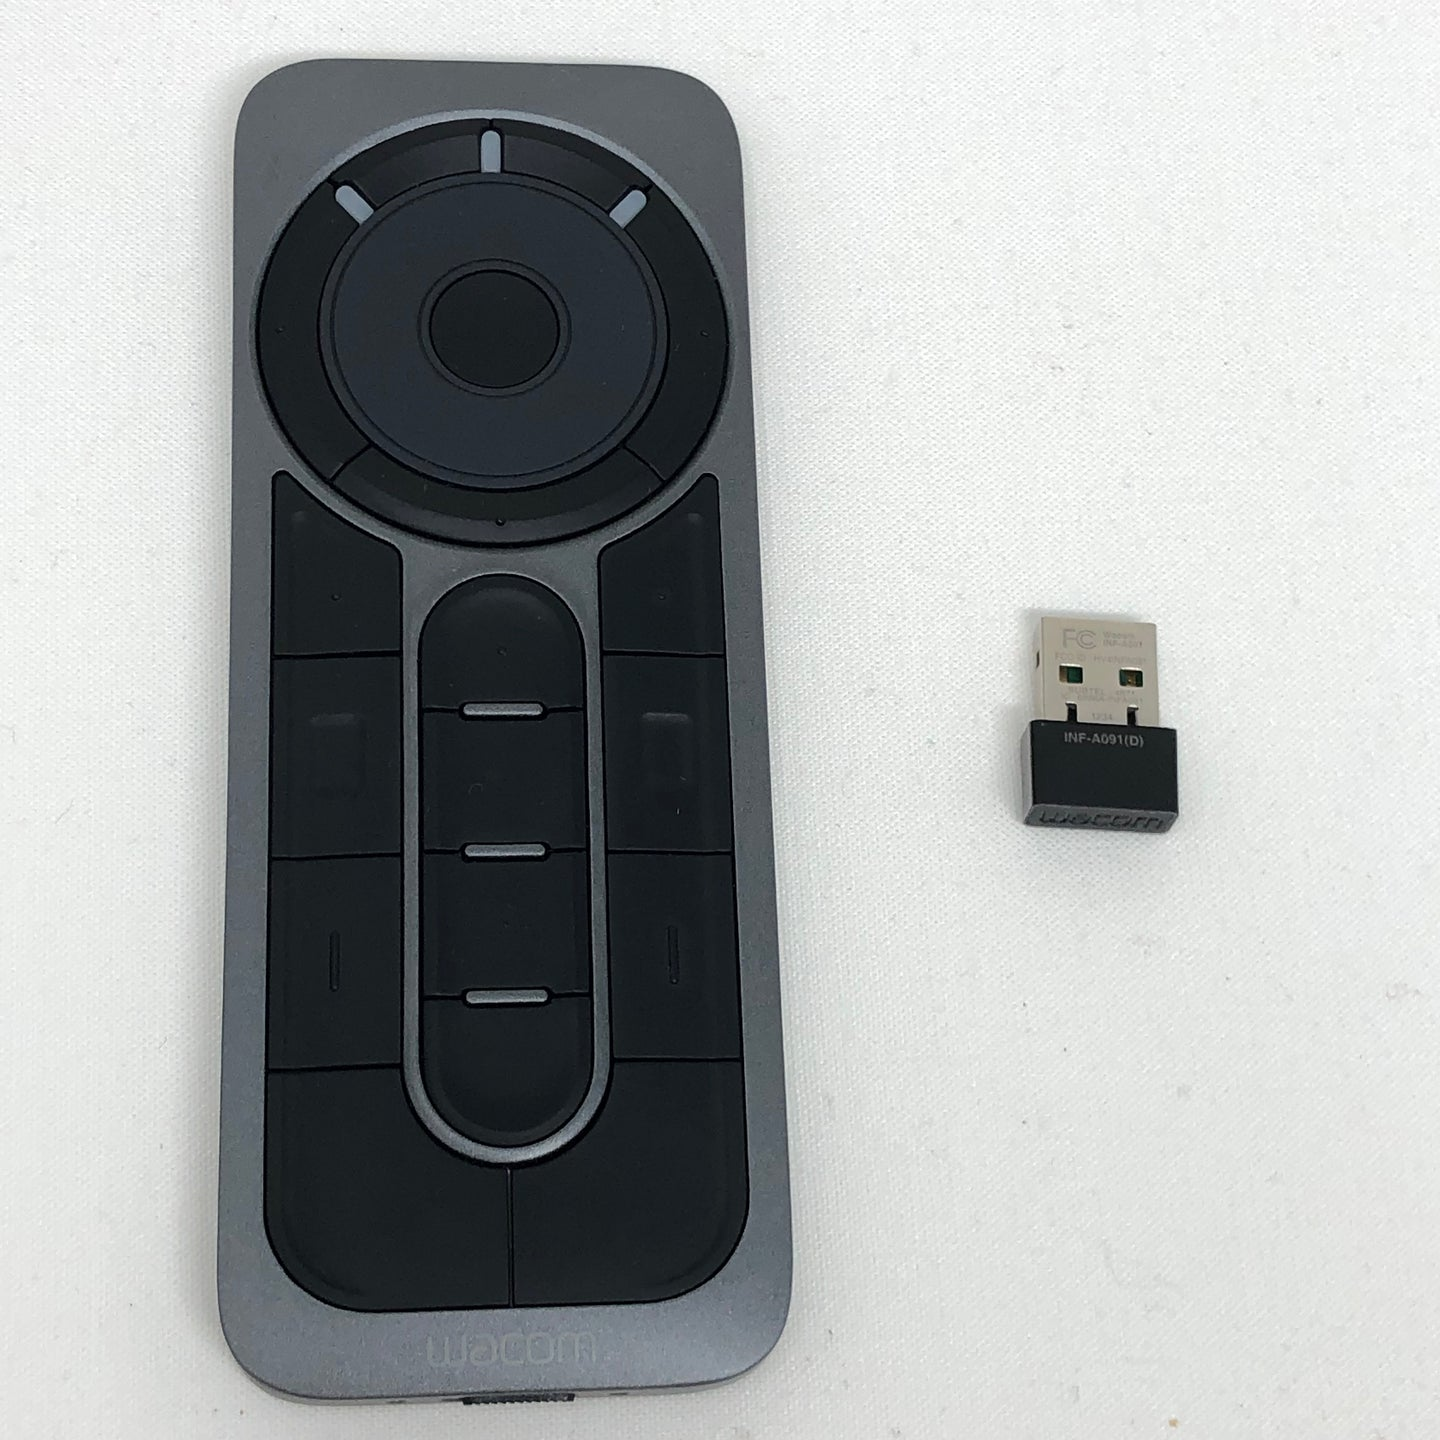 Wacom Express Key Remote (Cintiq/Intuos) + USB Dongle - Great Condition